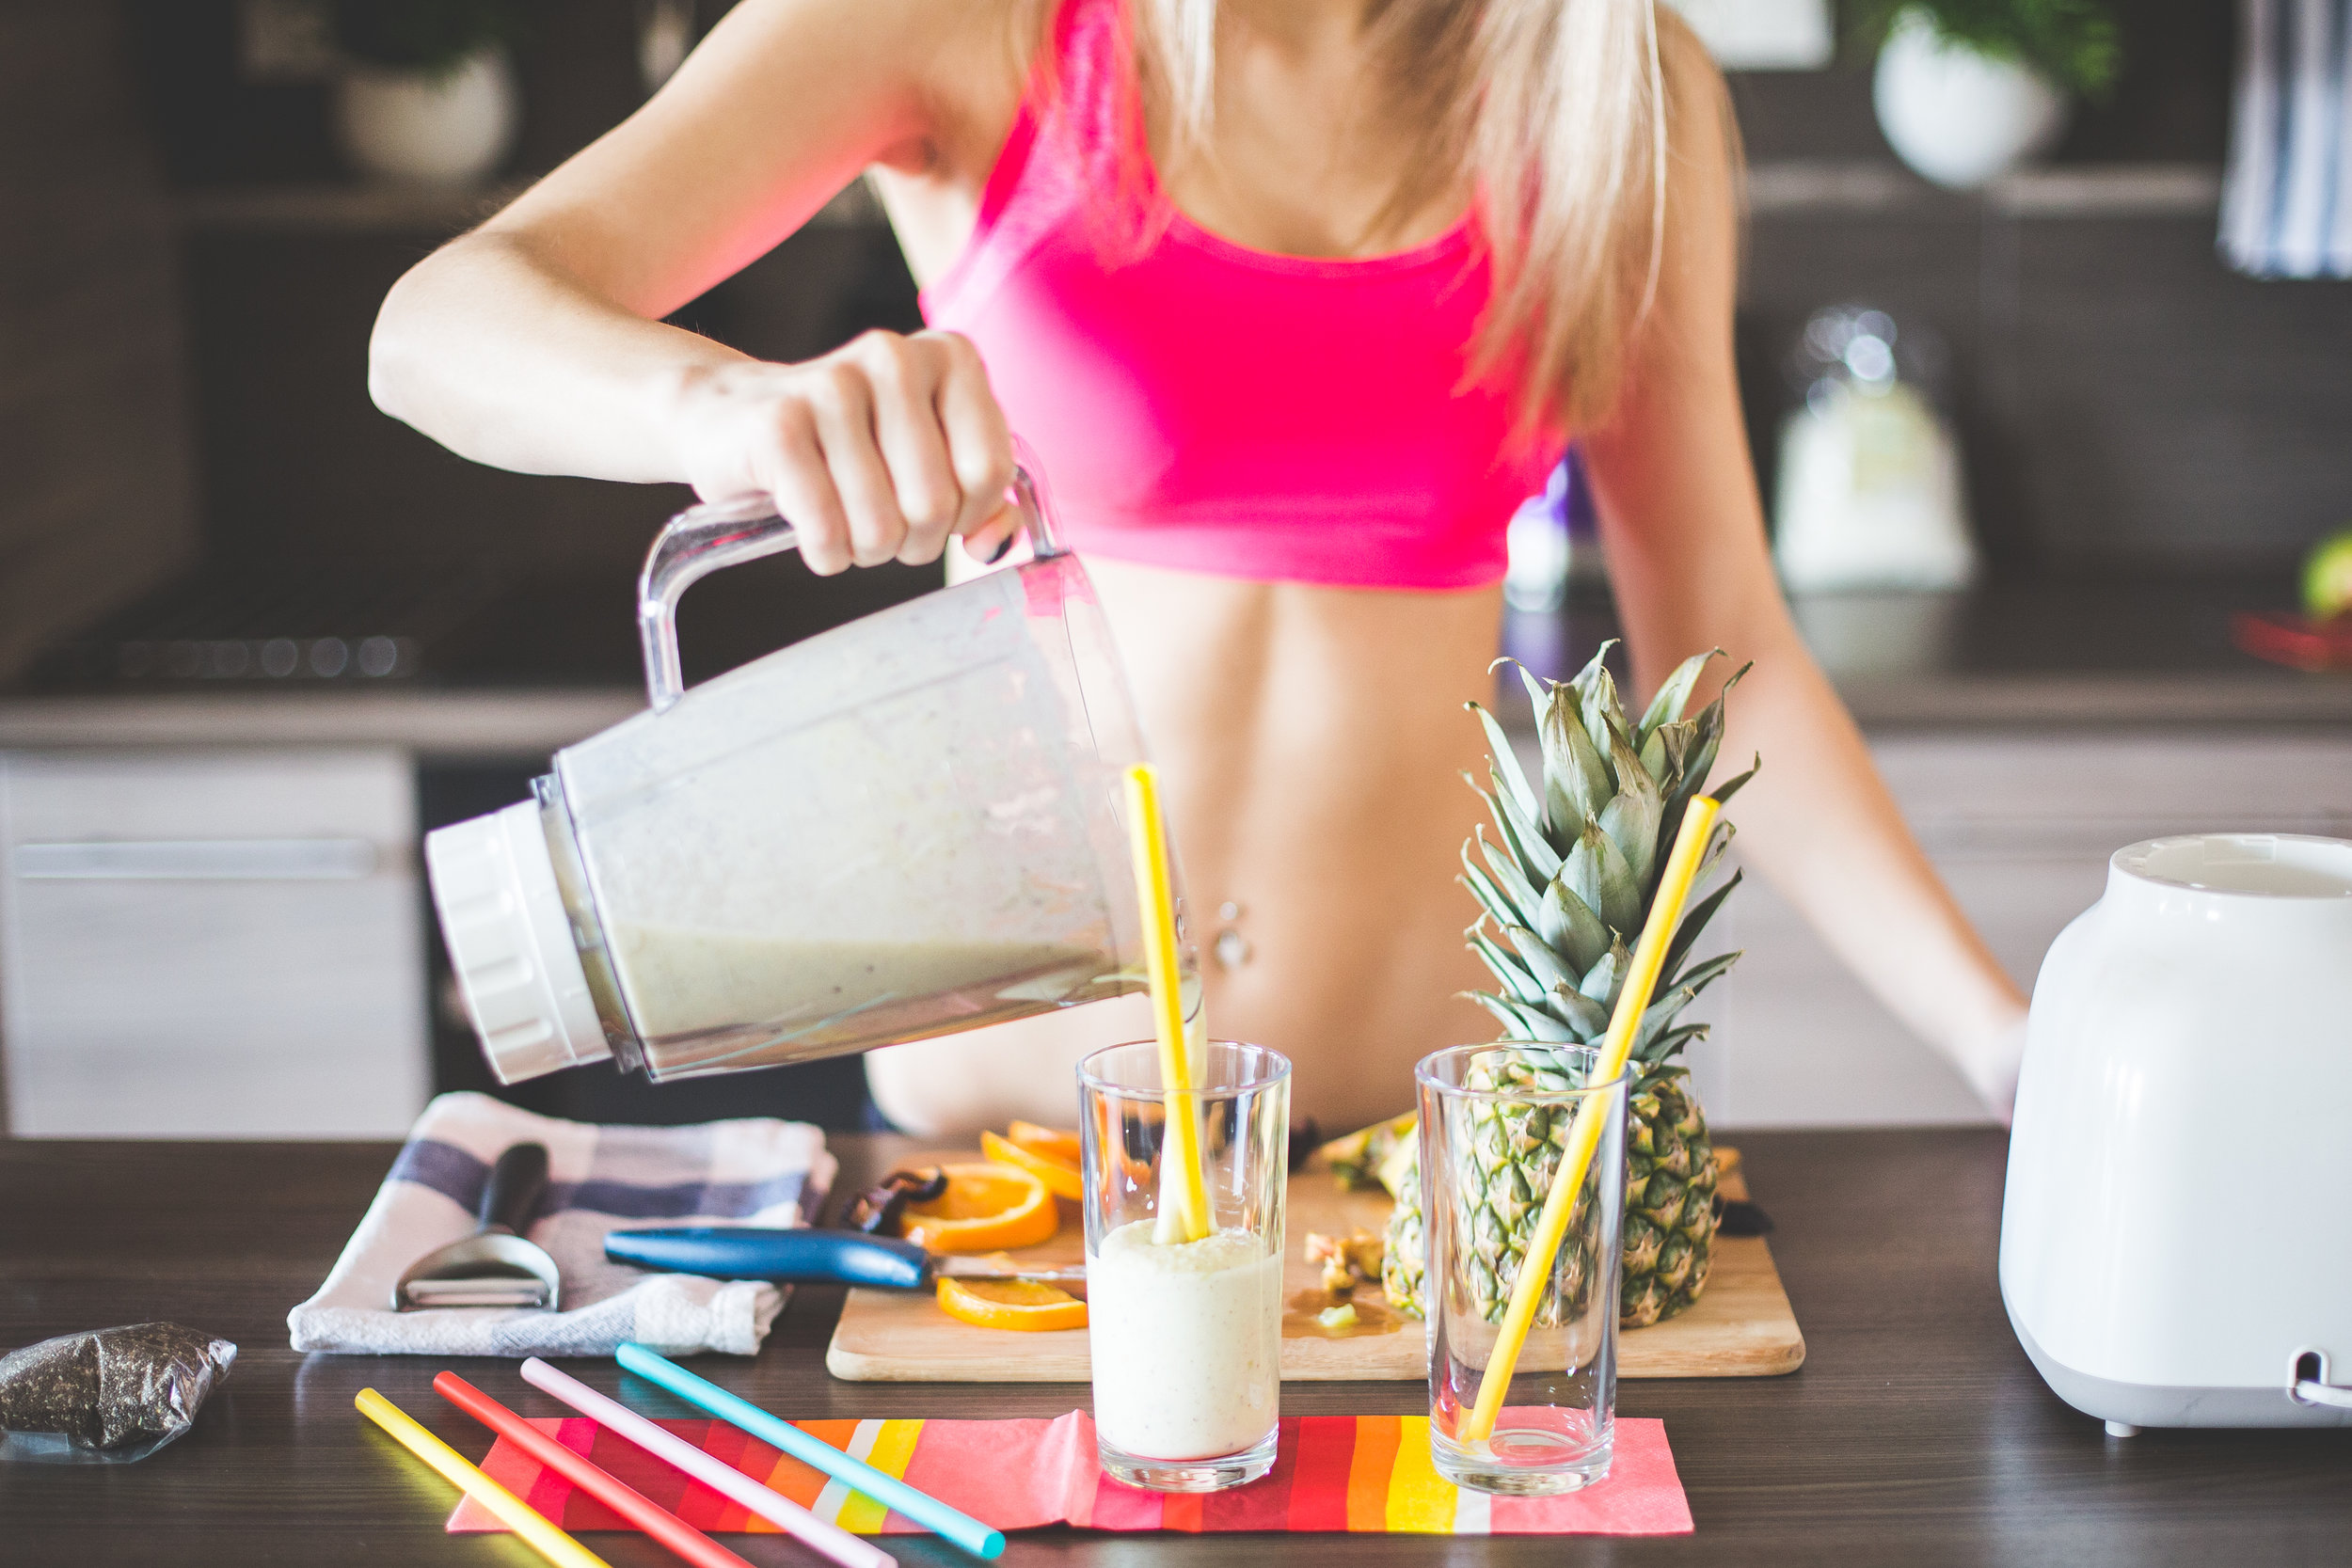 Stay-Fit-Everyday-Rituals-To-Slim-Down-and-Shape-Up.jpg